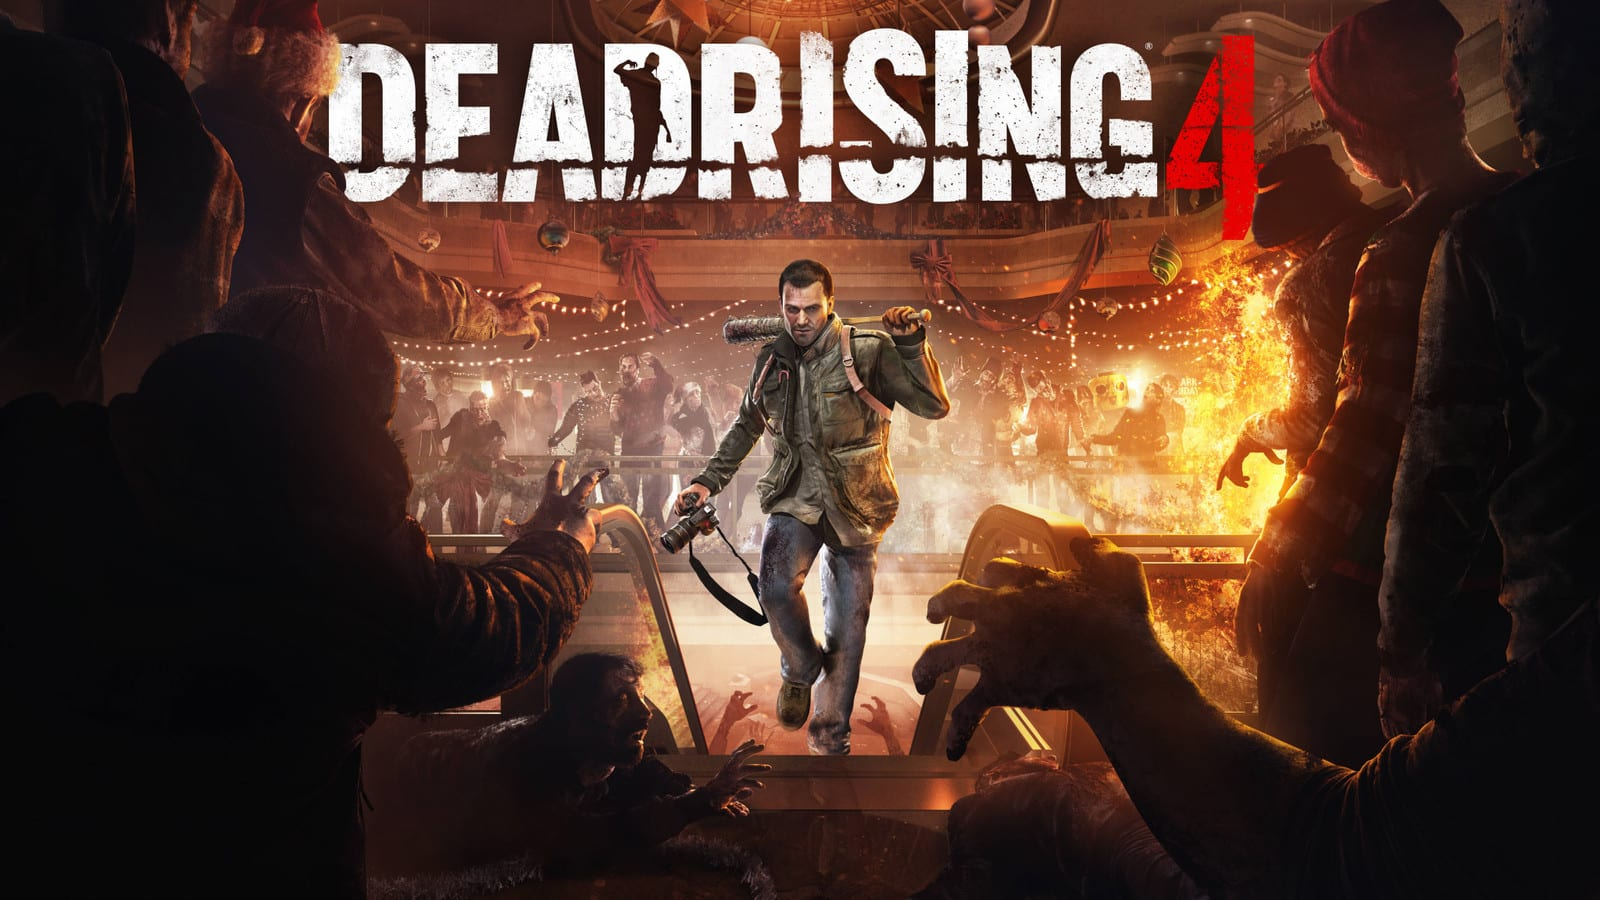 Dead Rising 4 coming to Steam in March